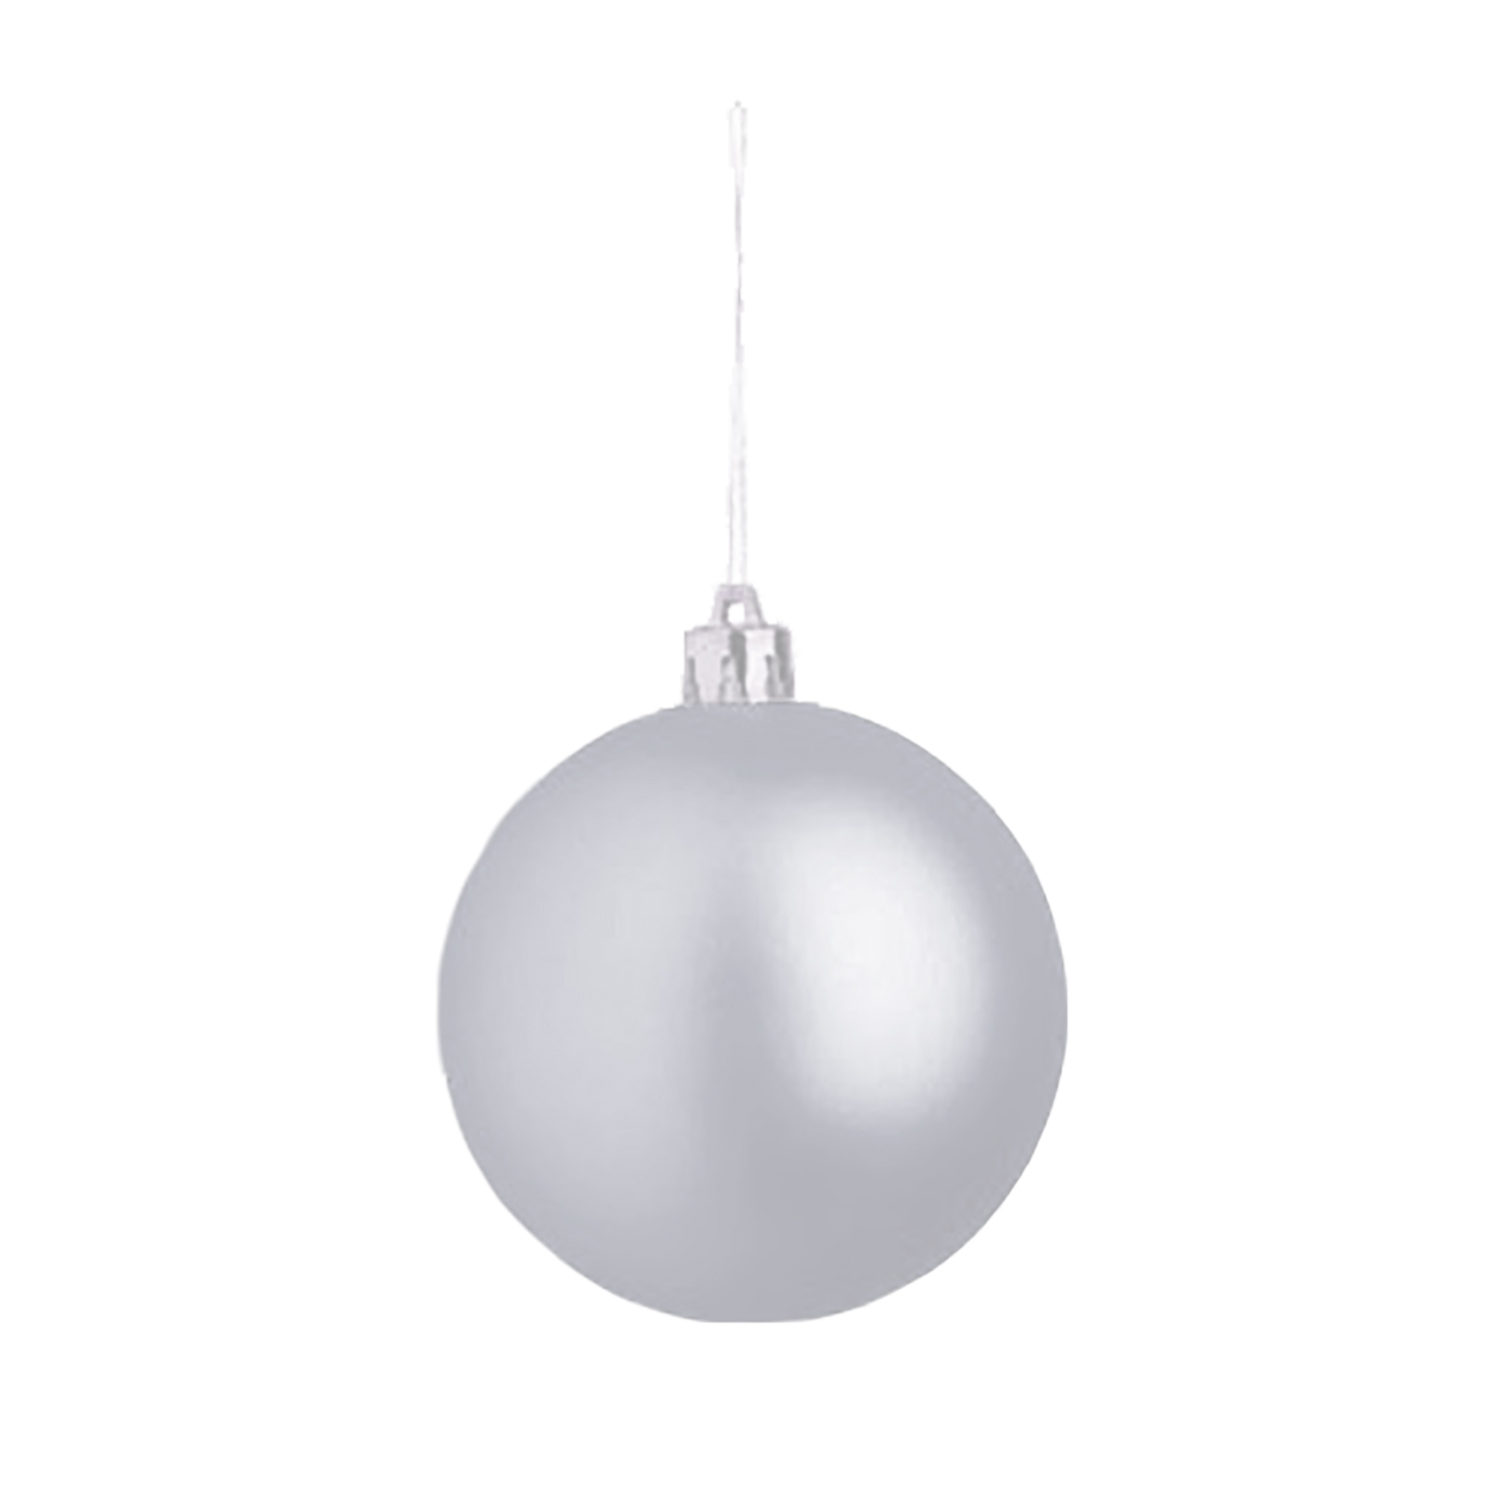 Christmas Ball (Christmas ornament 8cm) - hmi99099-03 (silver)